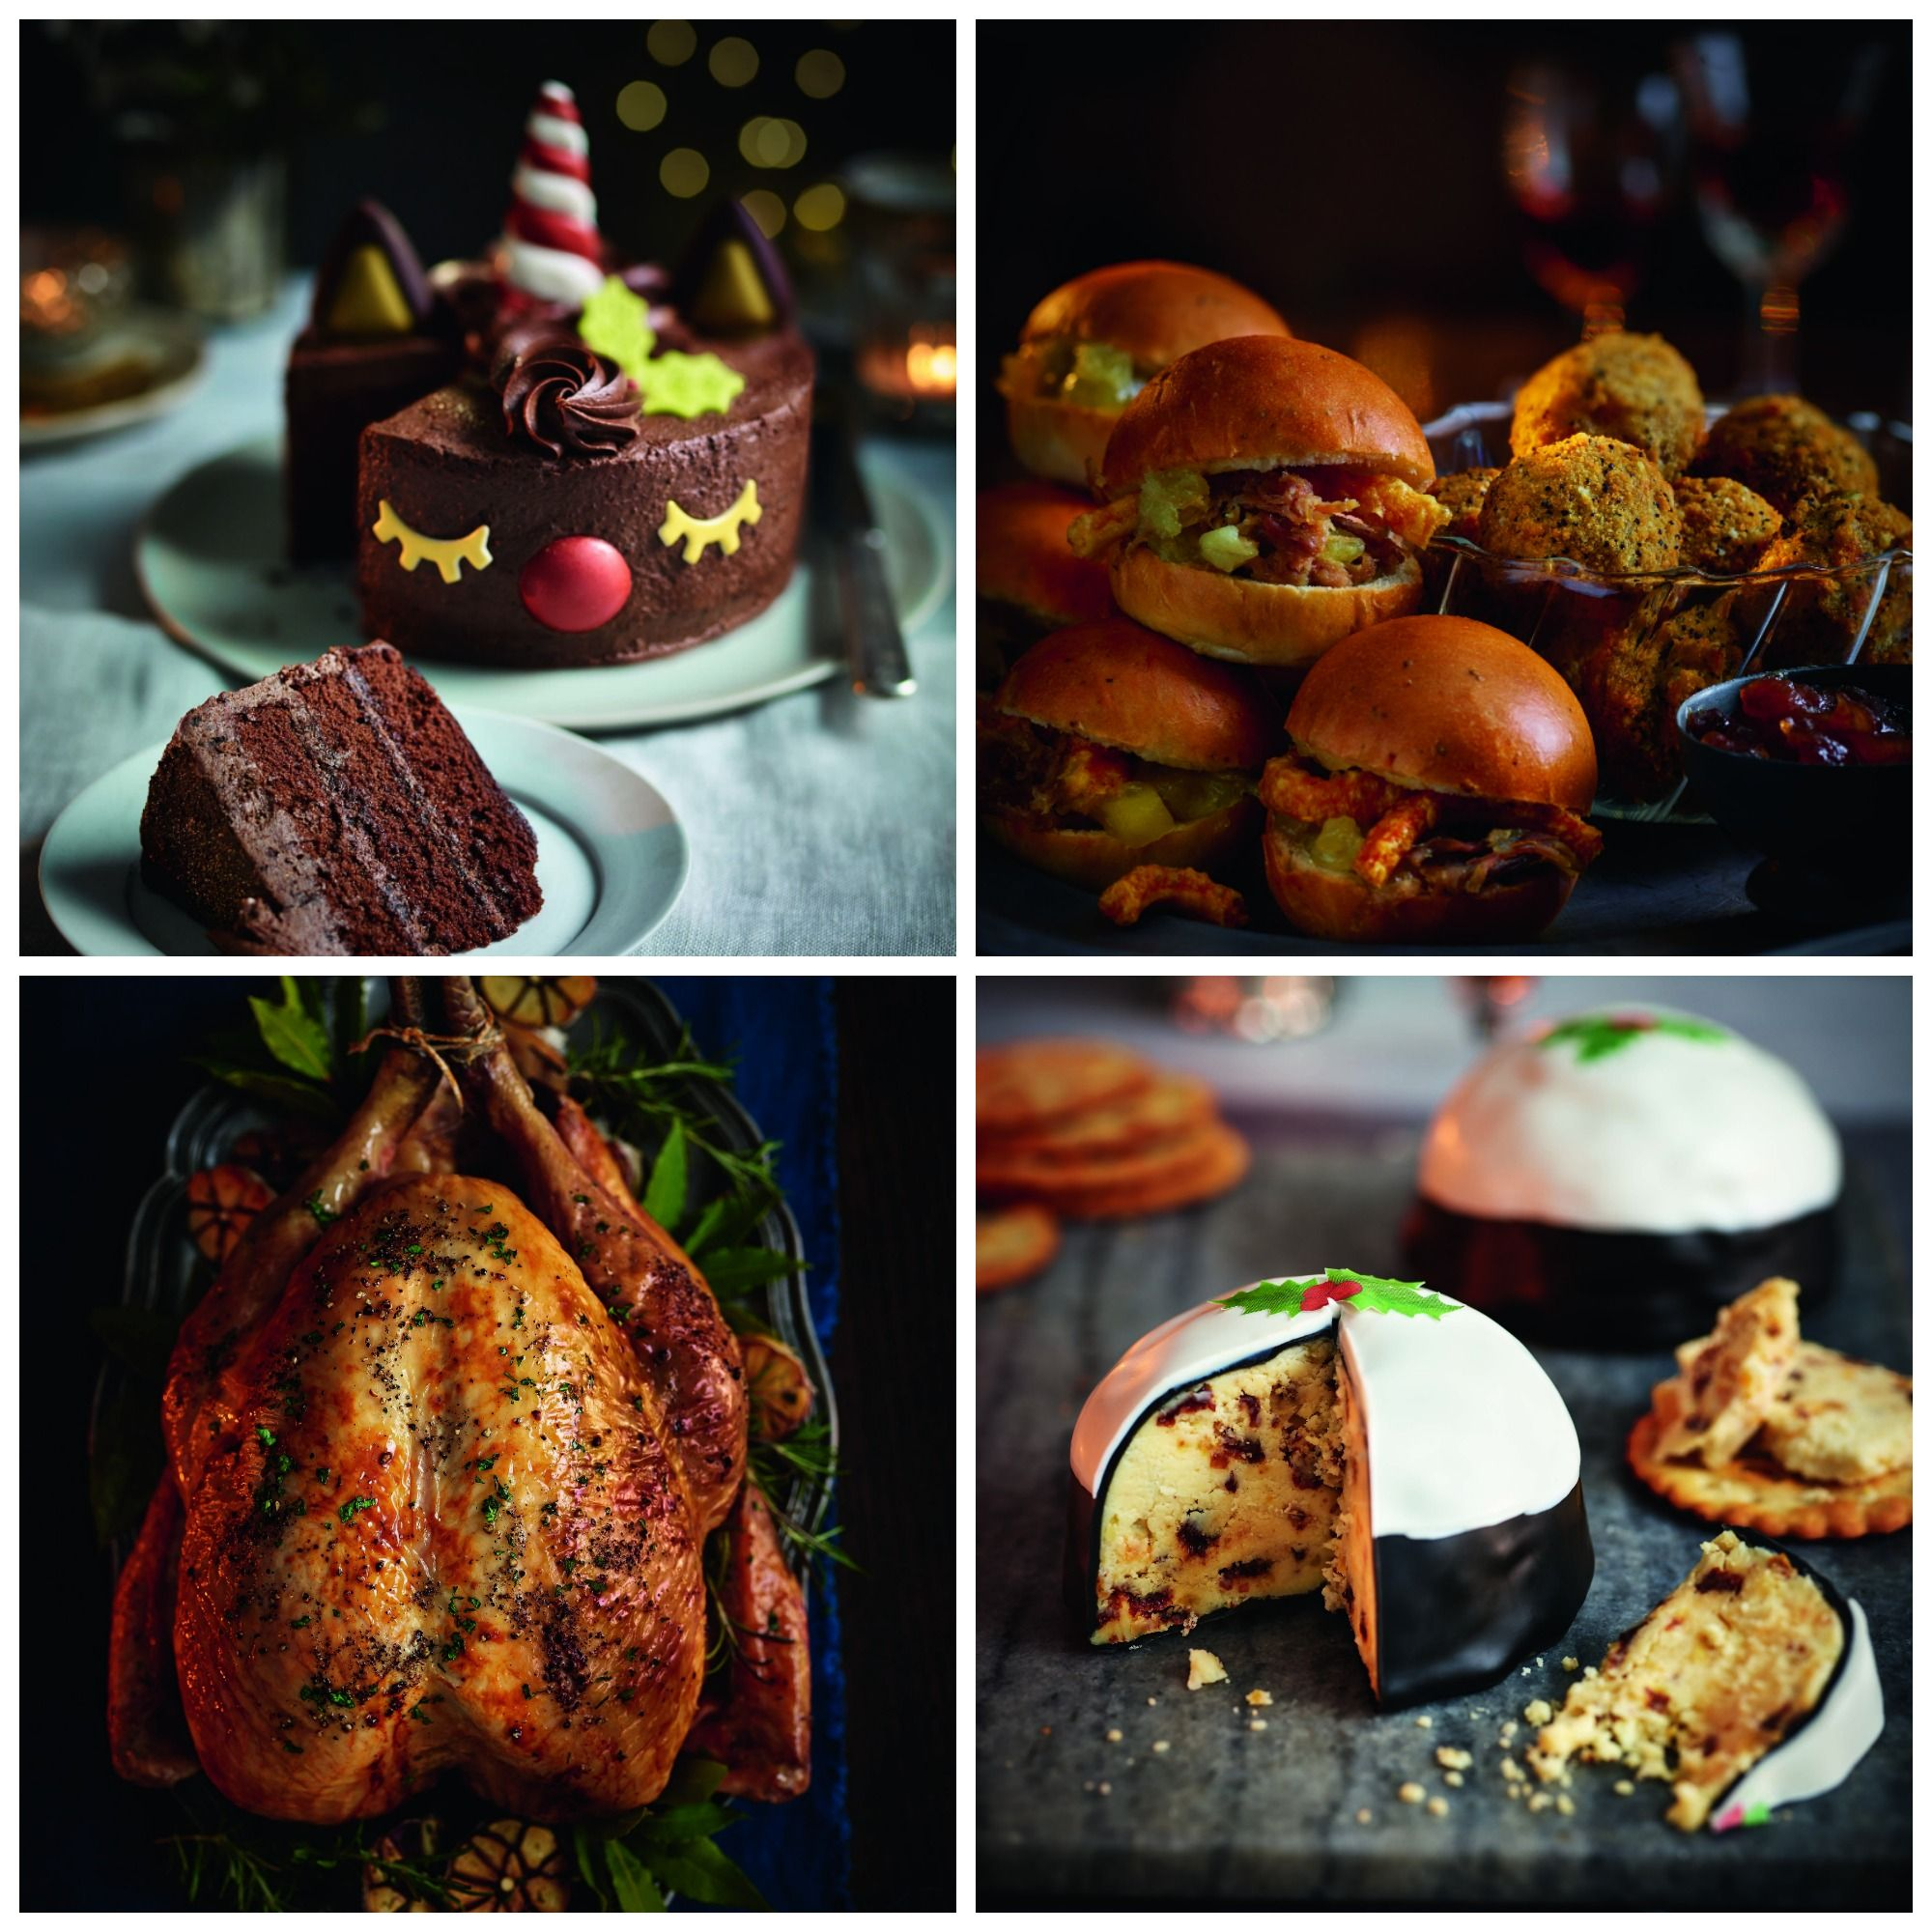 Tesco <b>Christmas food</b> - All the tasty stuff you can <b>buy</b> from Tesco ...